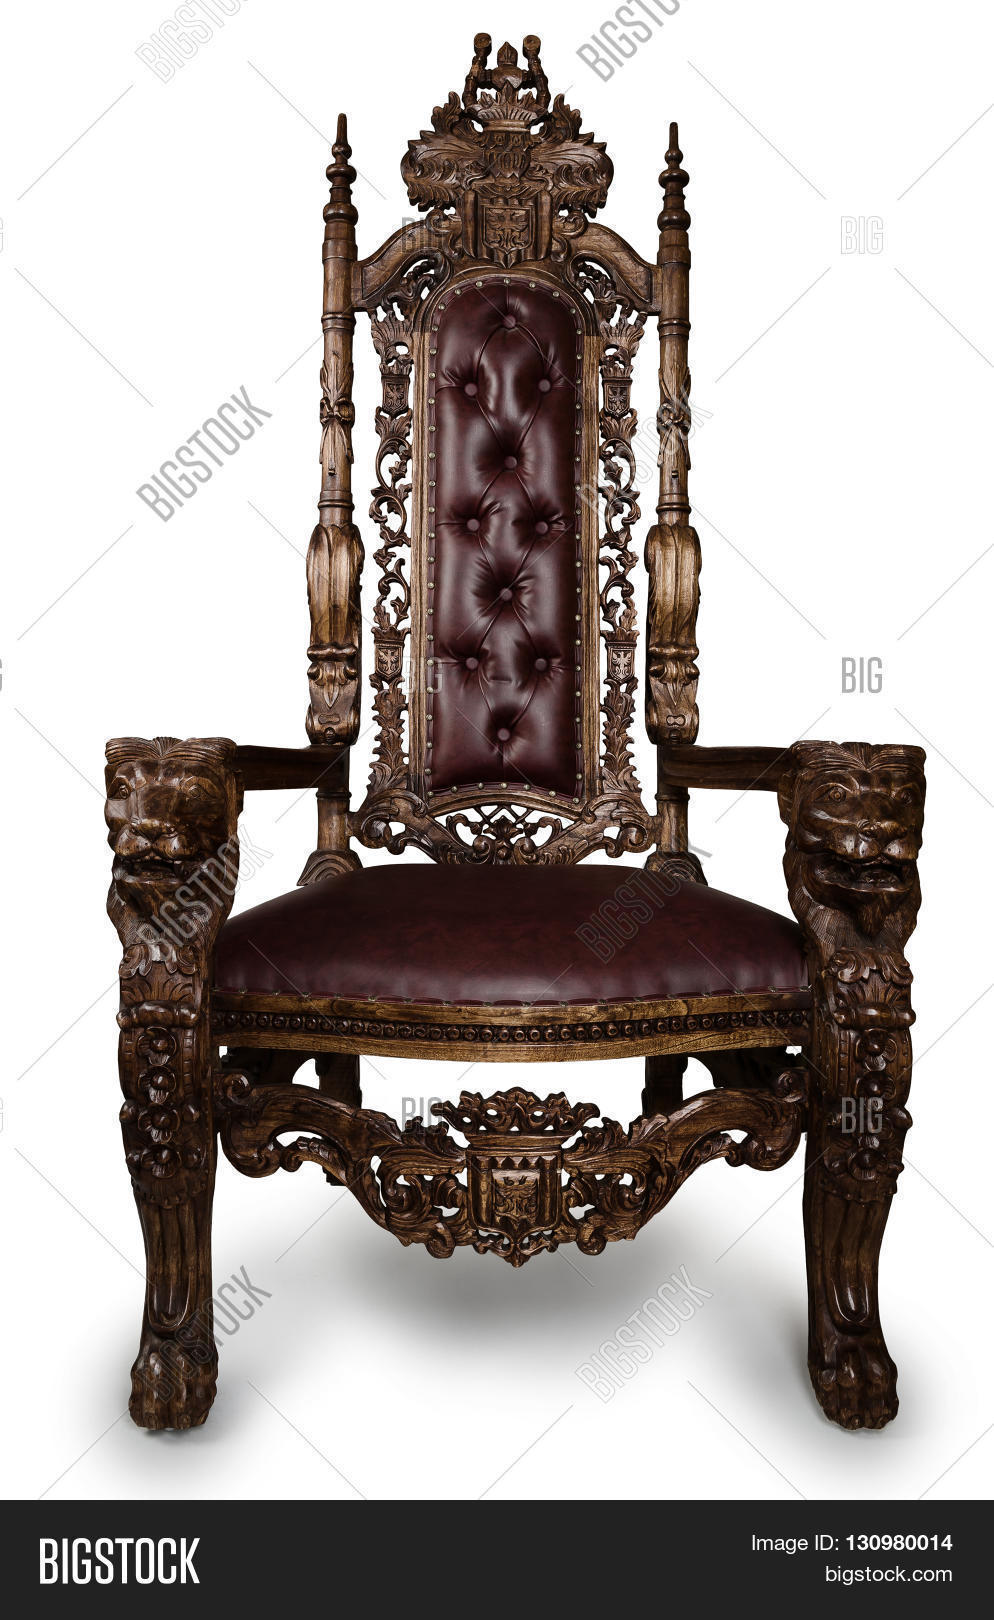 Vintage throne chair isolated on image photo bigstock for Throne chair plans